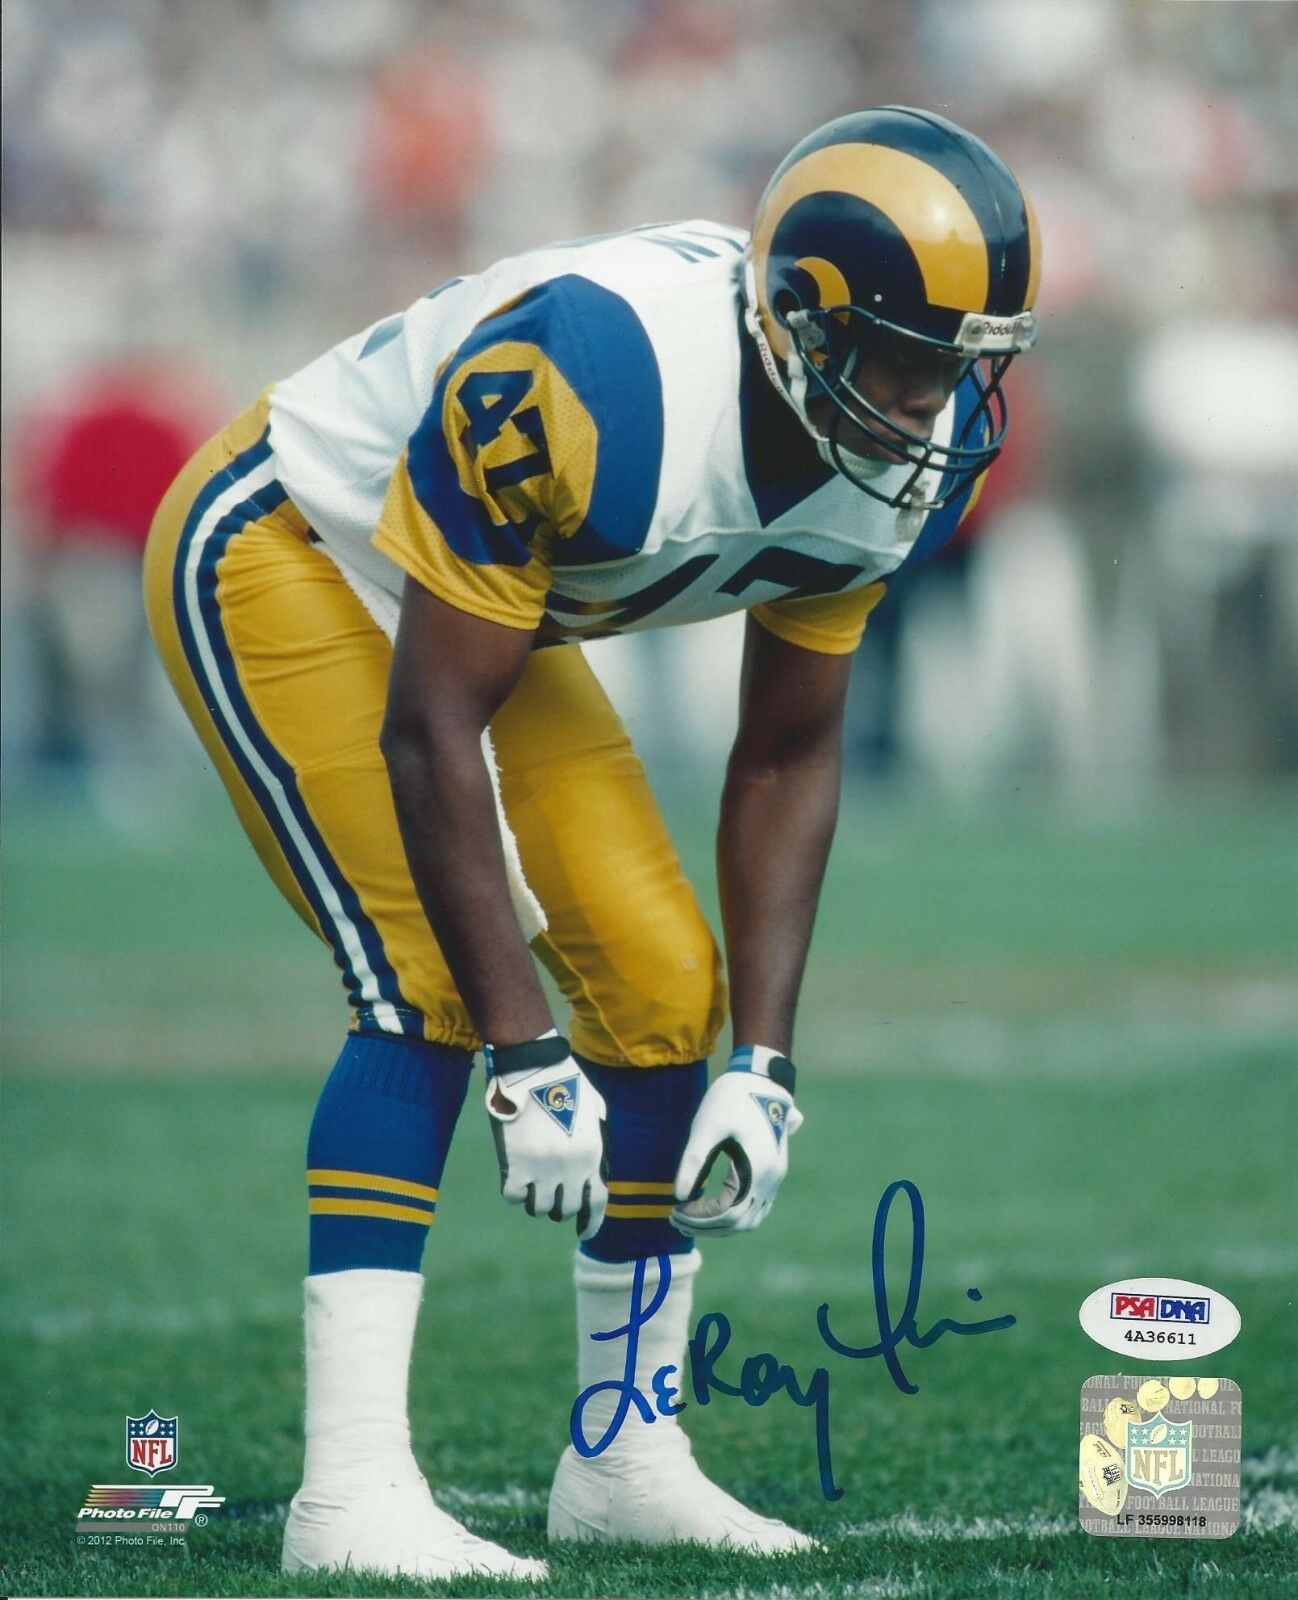 Leroy Irvin Los Angeles Rams Signed 8x10 Photo - PSA/DNA # 4A36611